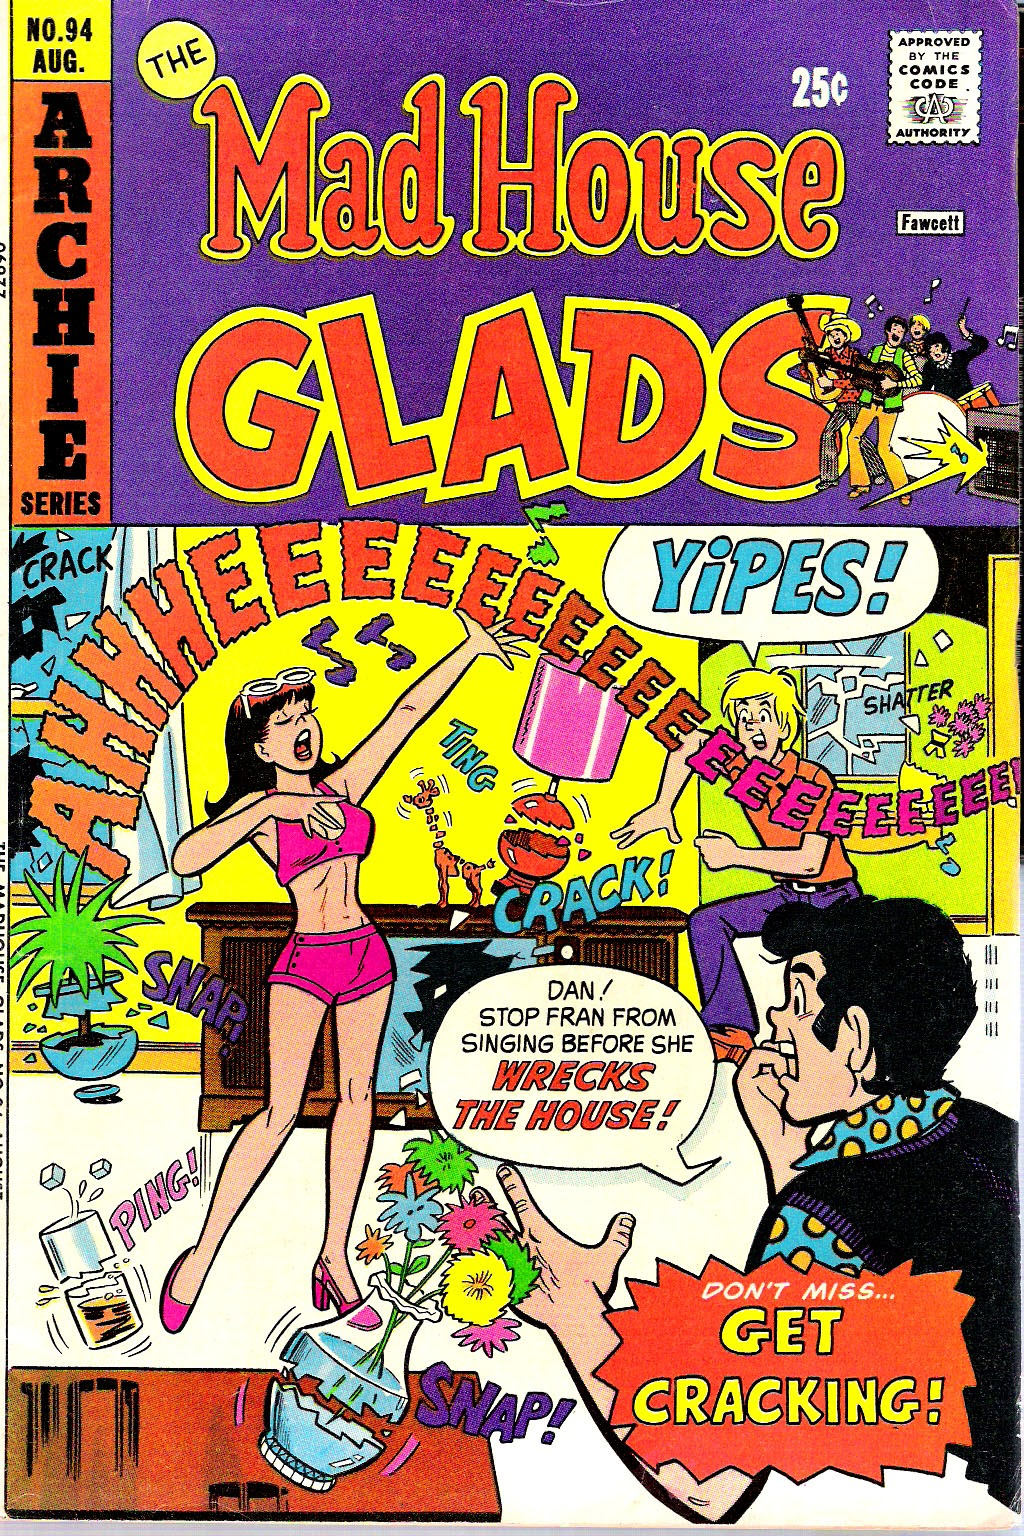 Read online The Mad House Glads comic -  Issue #94 - 1